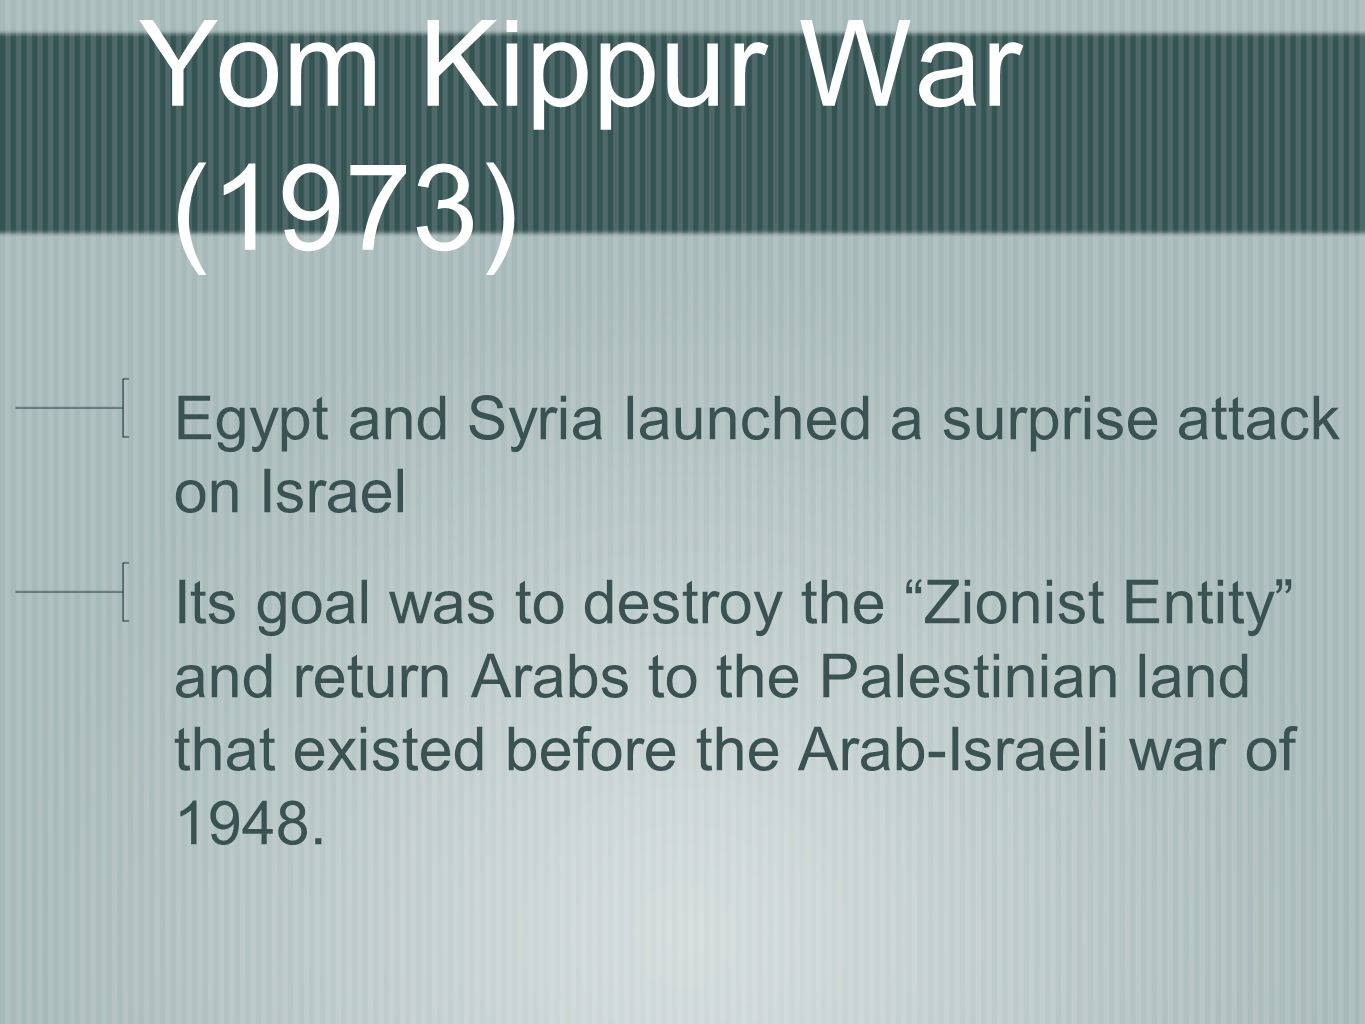 Yom Kippur War (1973) Egypt and Syria launched a surprise attack on Israel Its goal was to destroy the Zionist Entity and return Arabs to the Palestinian land that existed before the Arab-Israeli war of 1948.